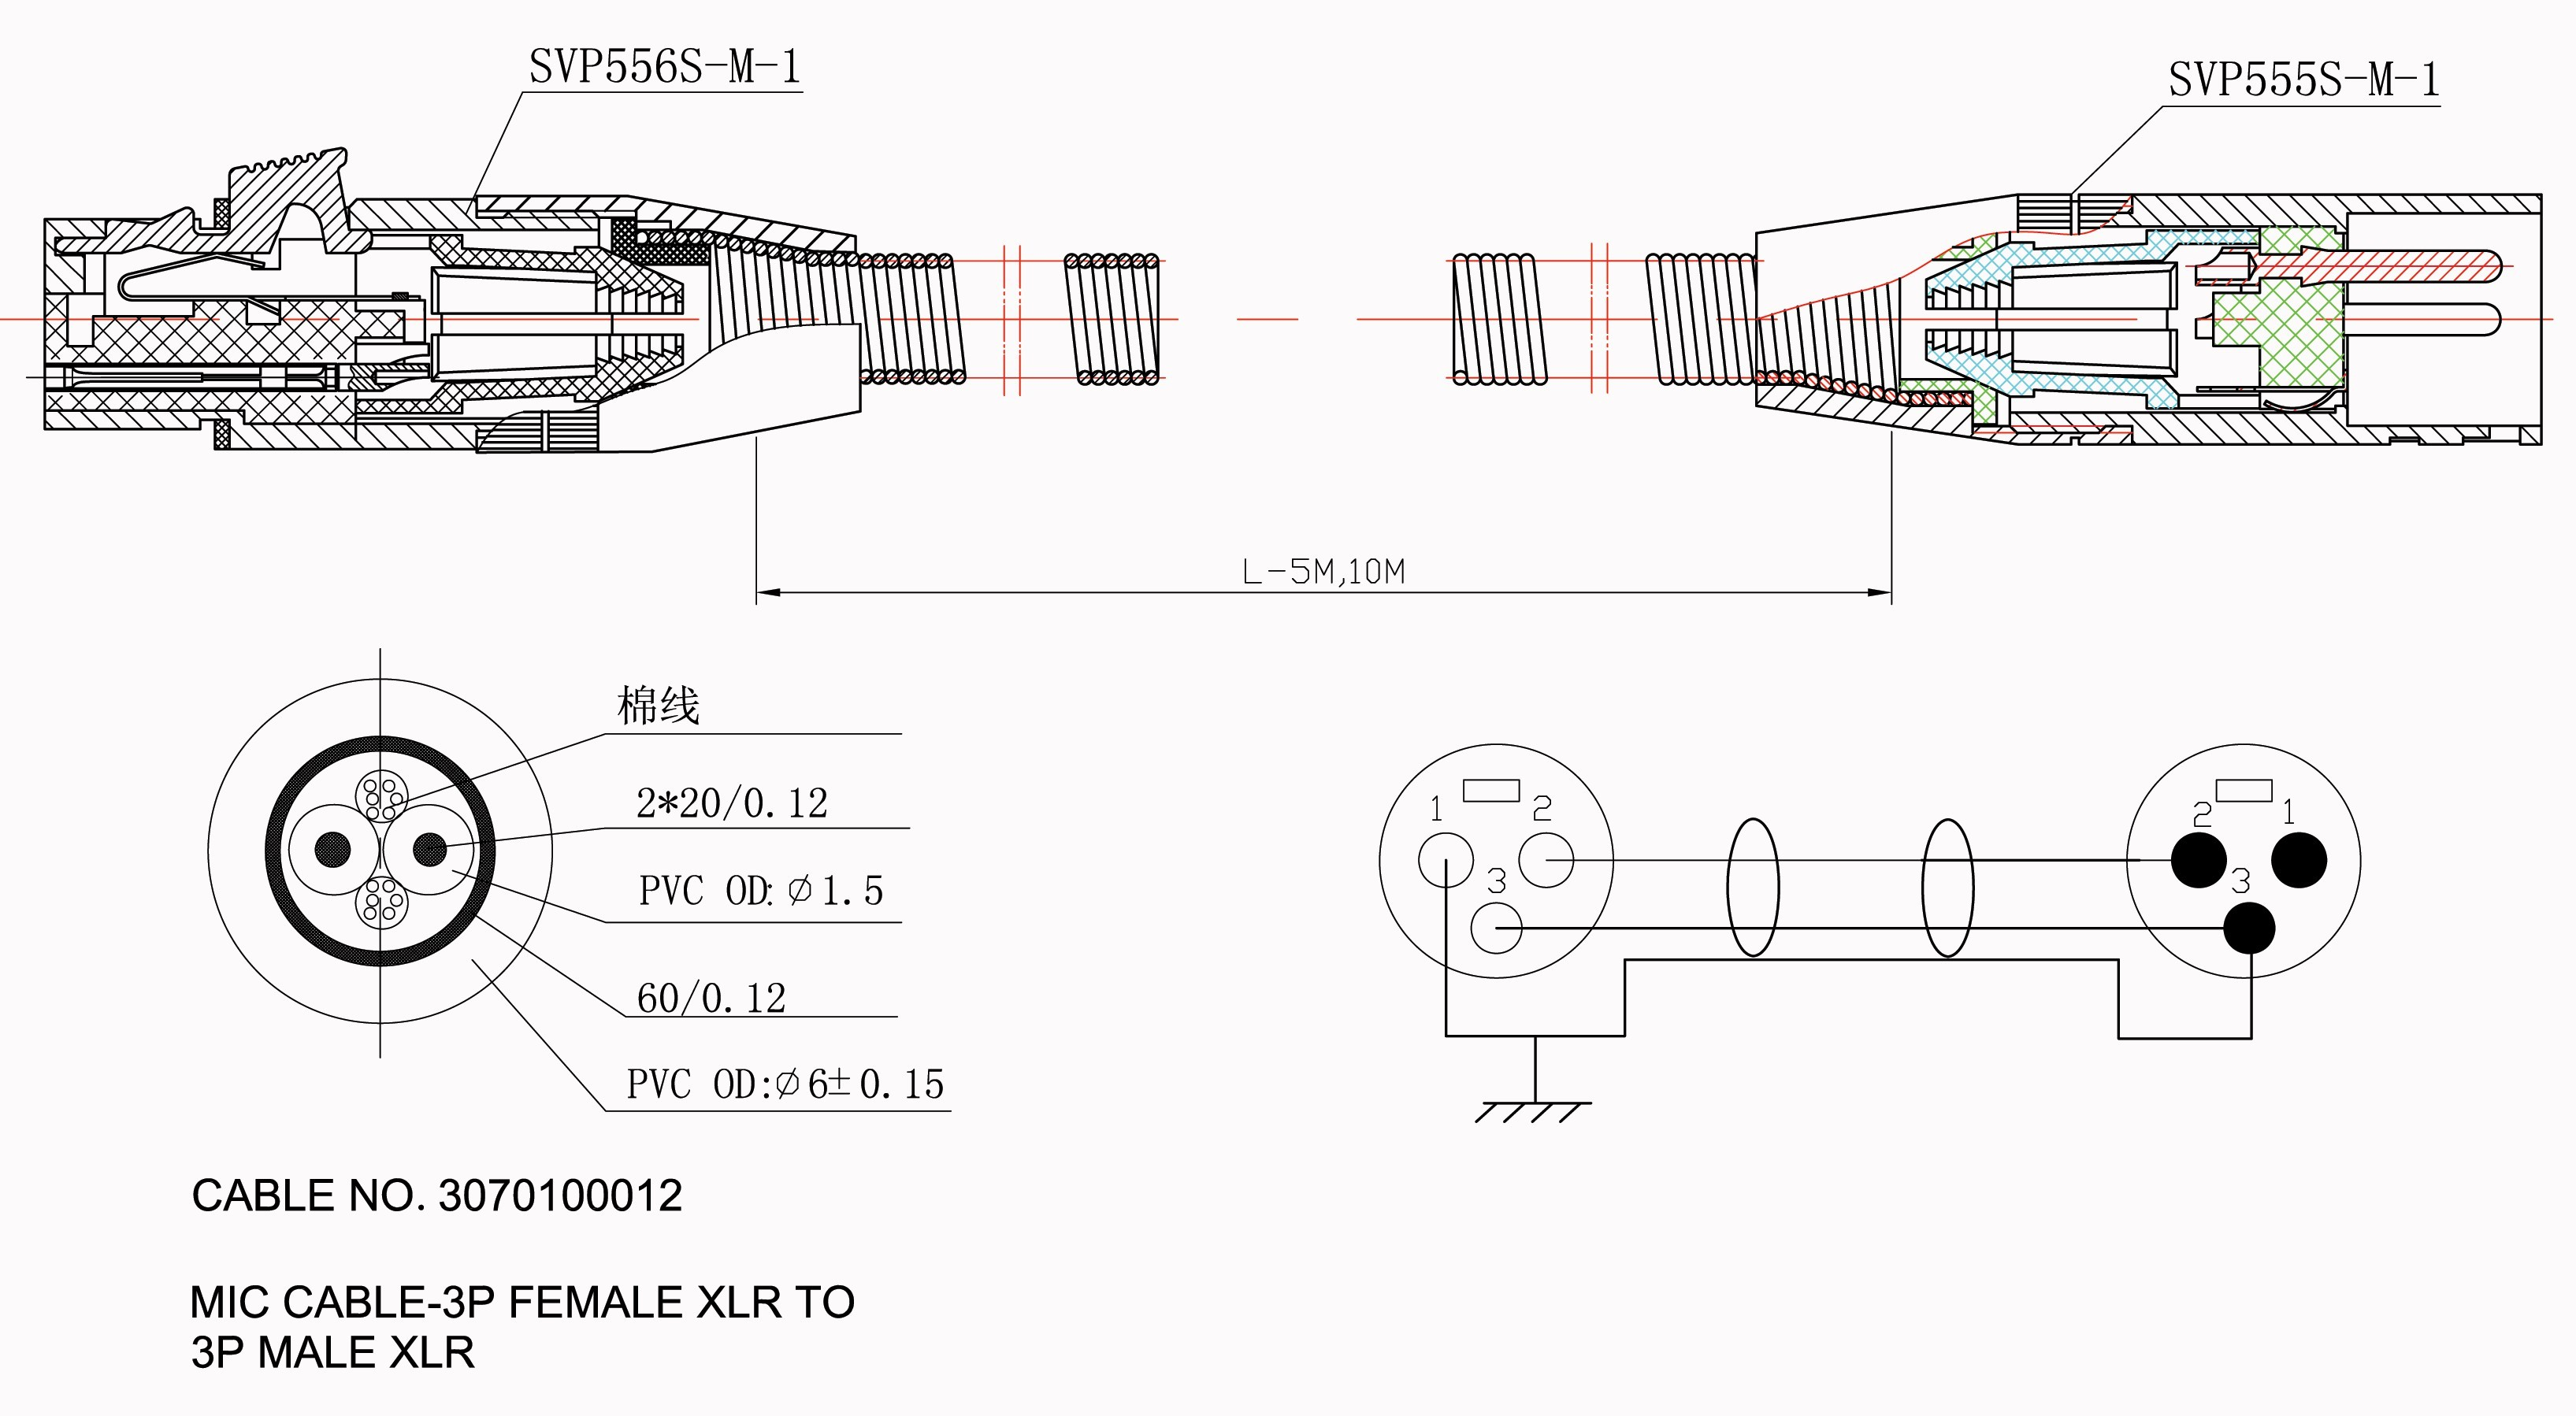 Tail Light Wiring Diagram 3 Wire Led Tail Light Wiring Diagram Elegant Lovely Dmx Wiring Of Tail Light Wiring Diagram